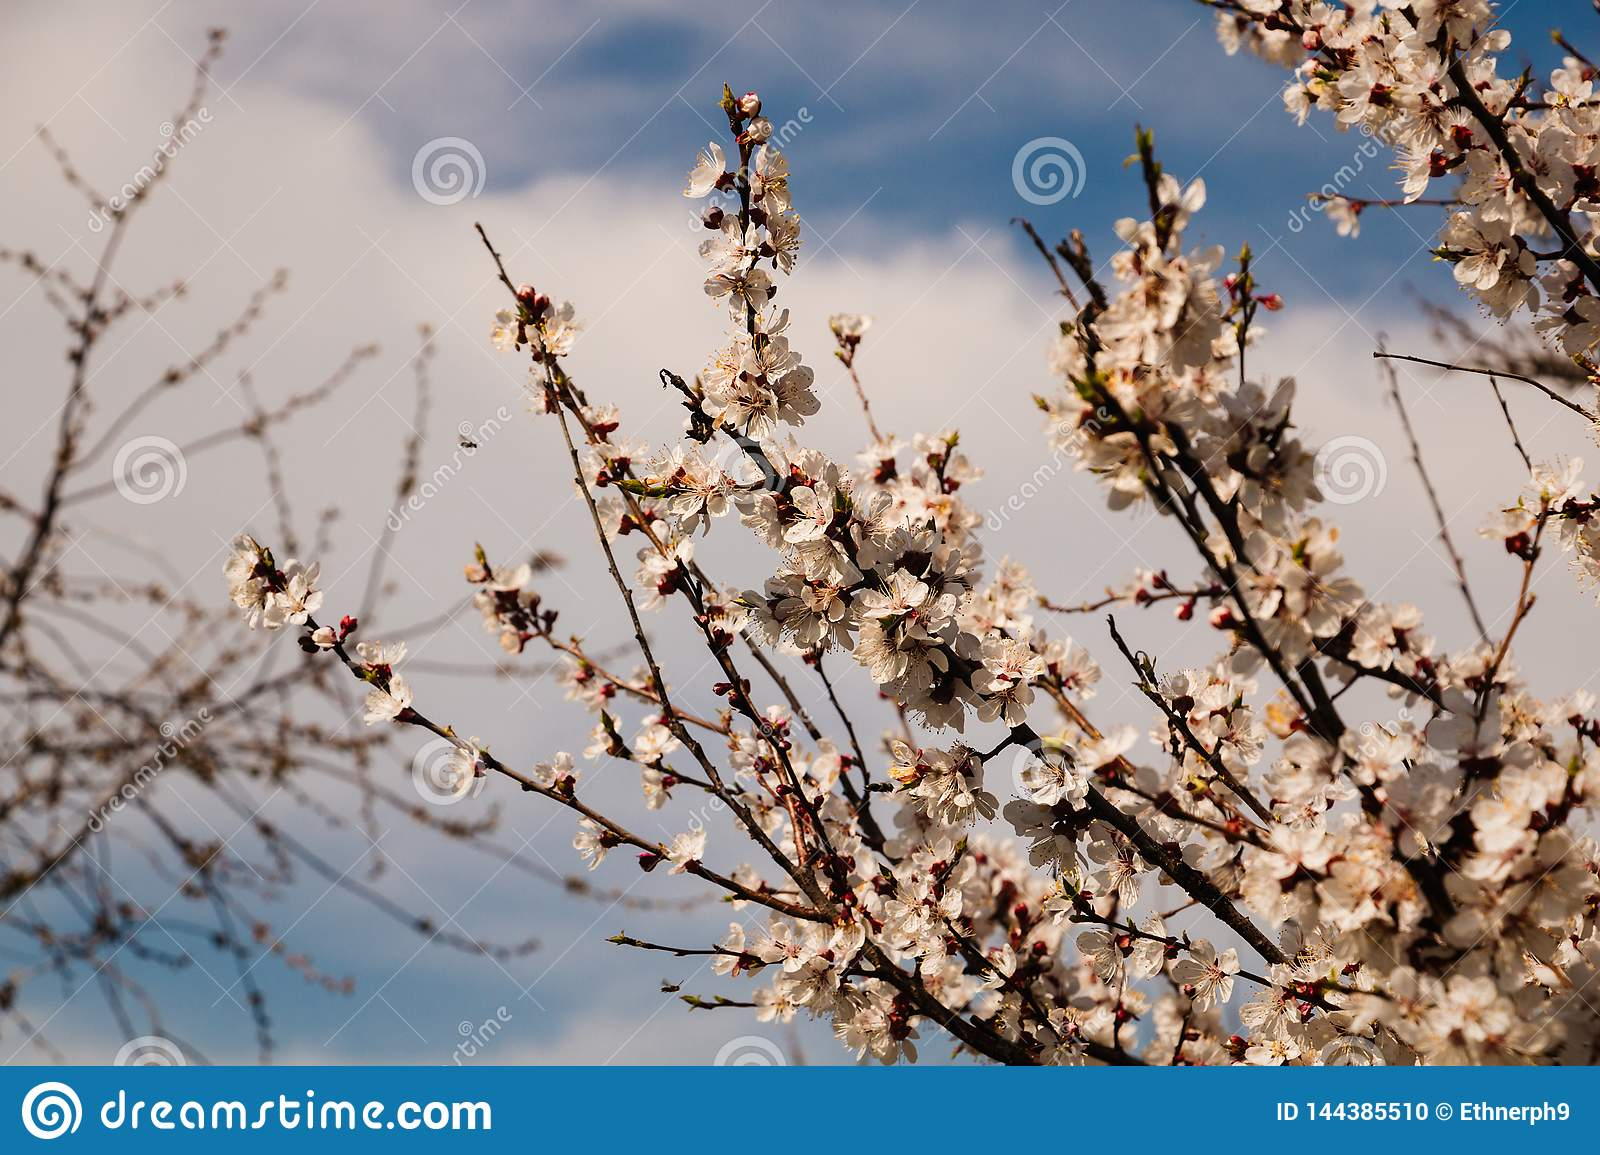 Spring blossom background. Beautiful nature scene with blooming tree and sun flare. Sunny day.